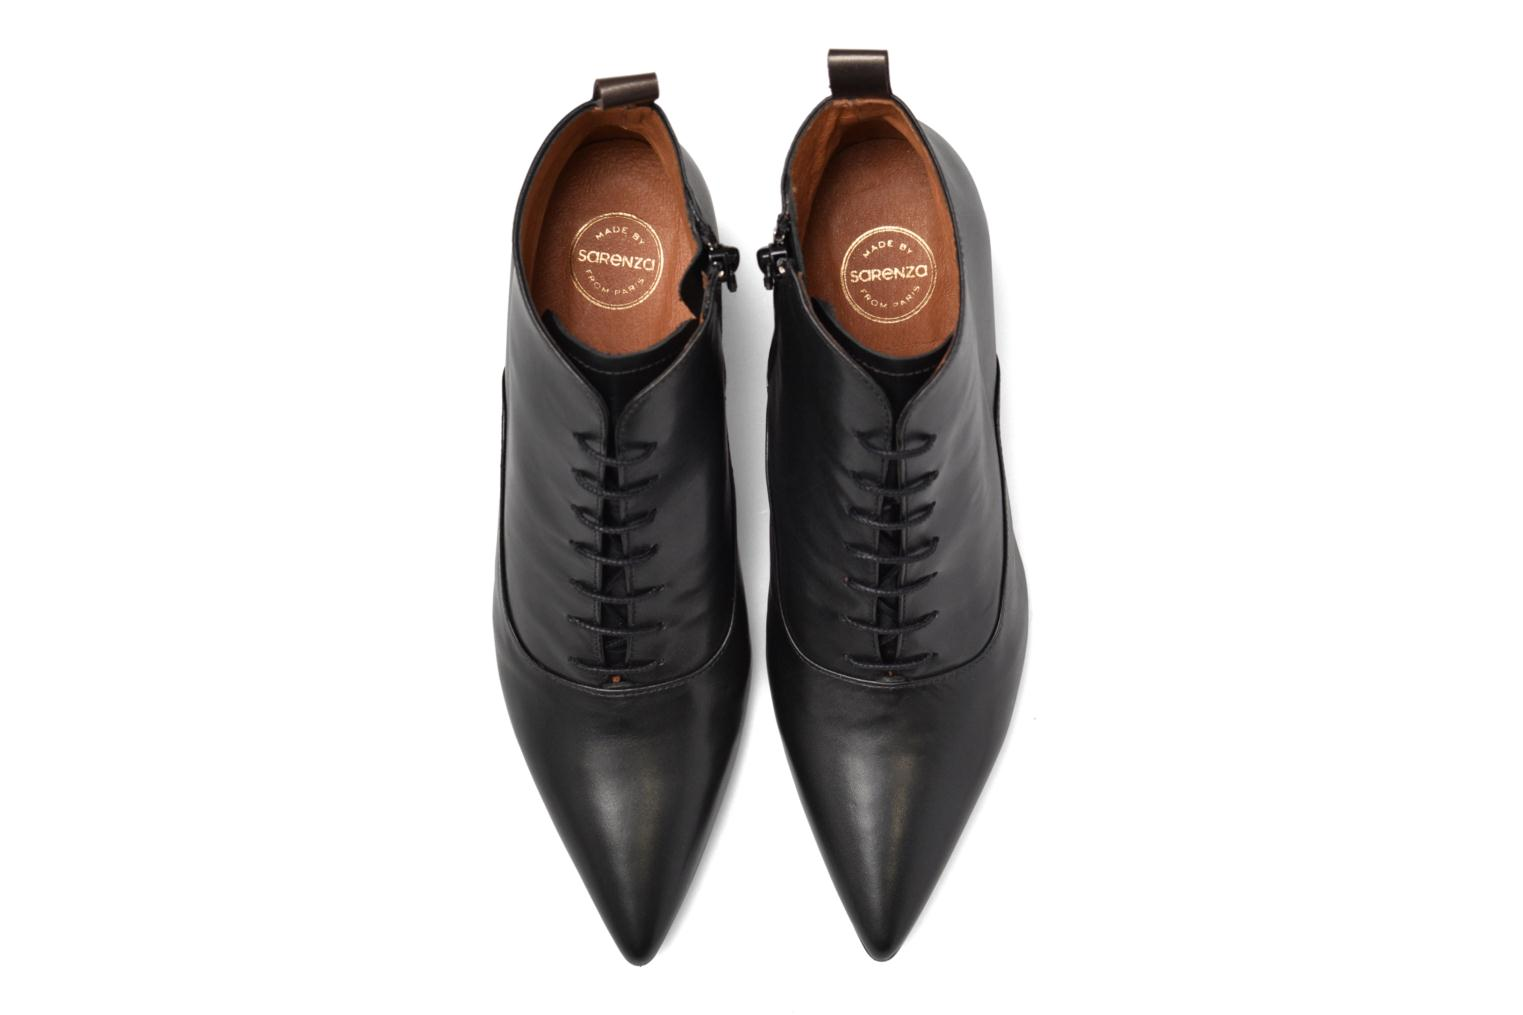 Bottines et boots Made by SARENZA See Ya Topanga #6 Noir vue portées chaussures